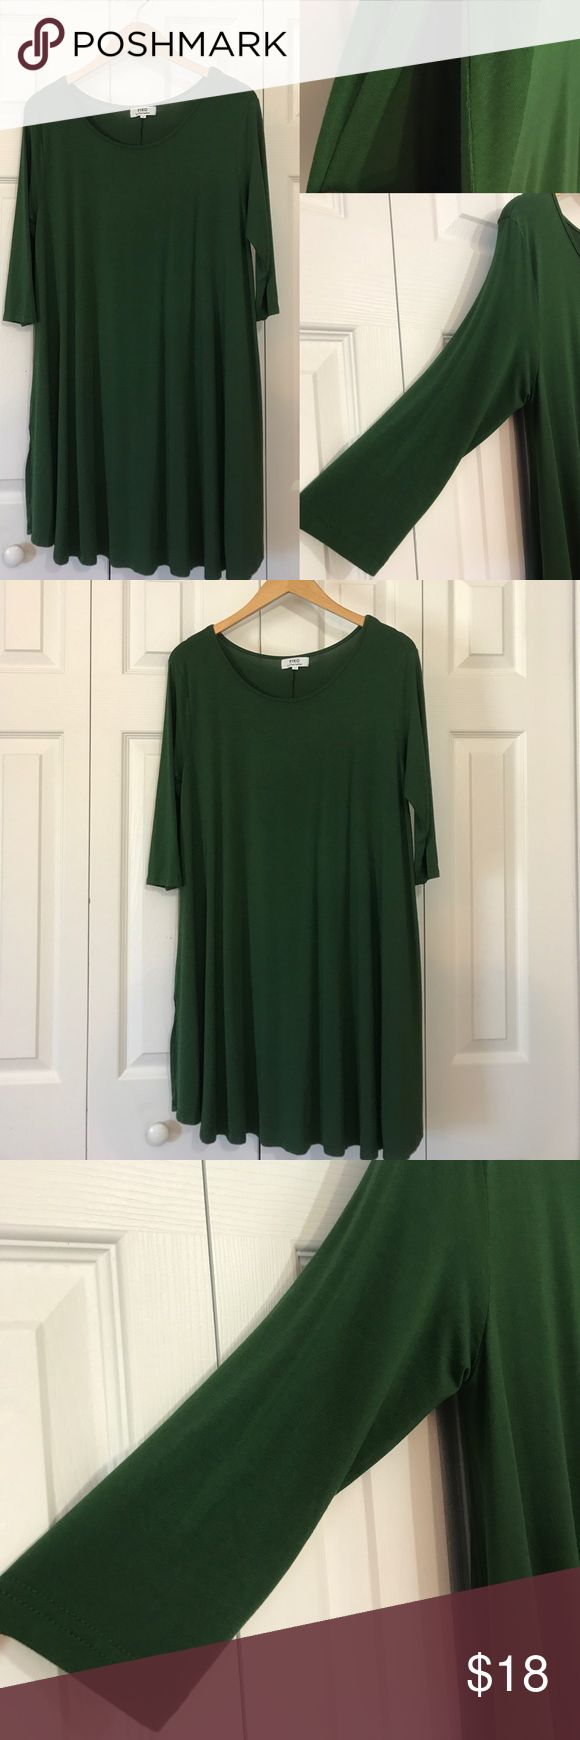 """Dress or Tunic 32""""L dress or tunic (depending in styling preferences) in hunter green color. Three fourth quarter sleeves with side pockets. 95% bamboo and 5% spandex. Piko Dresses Mini"""